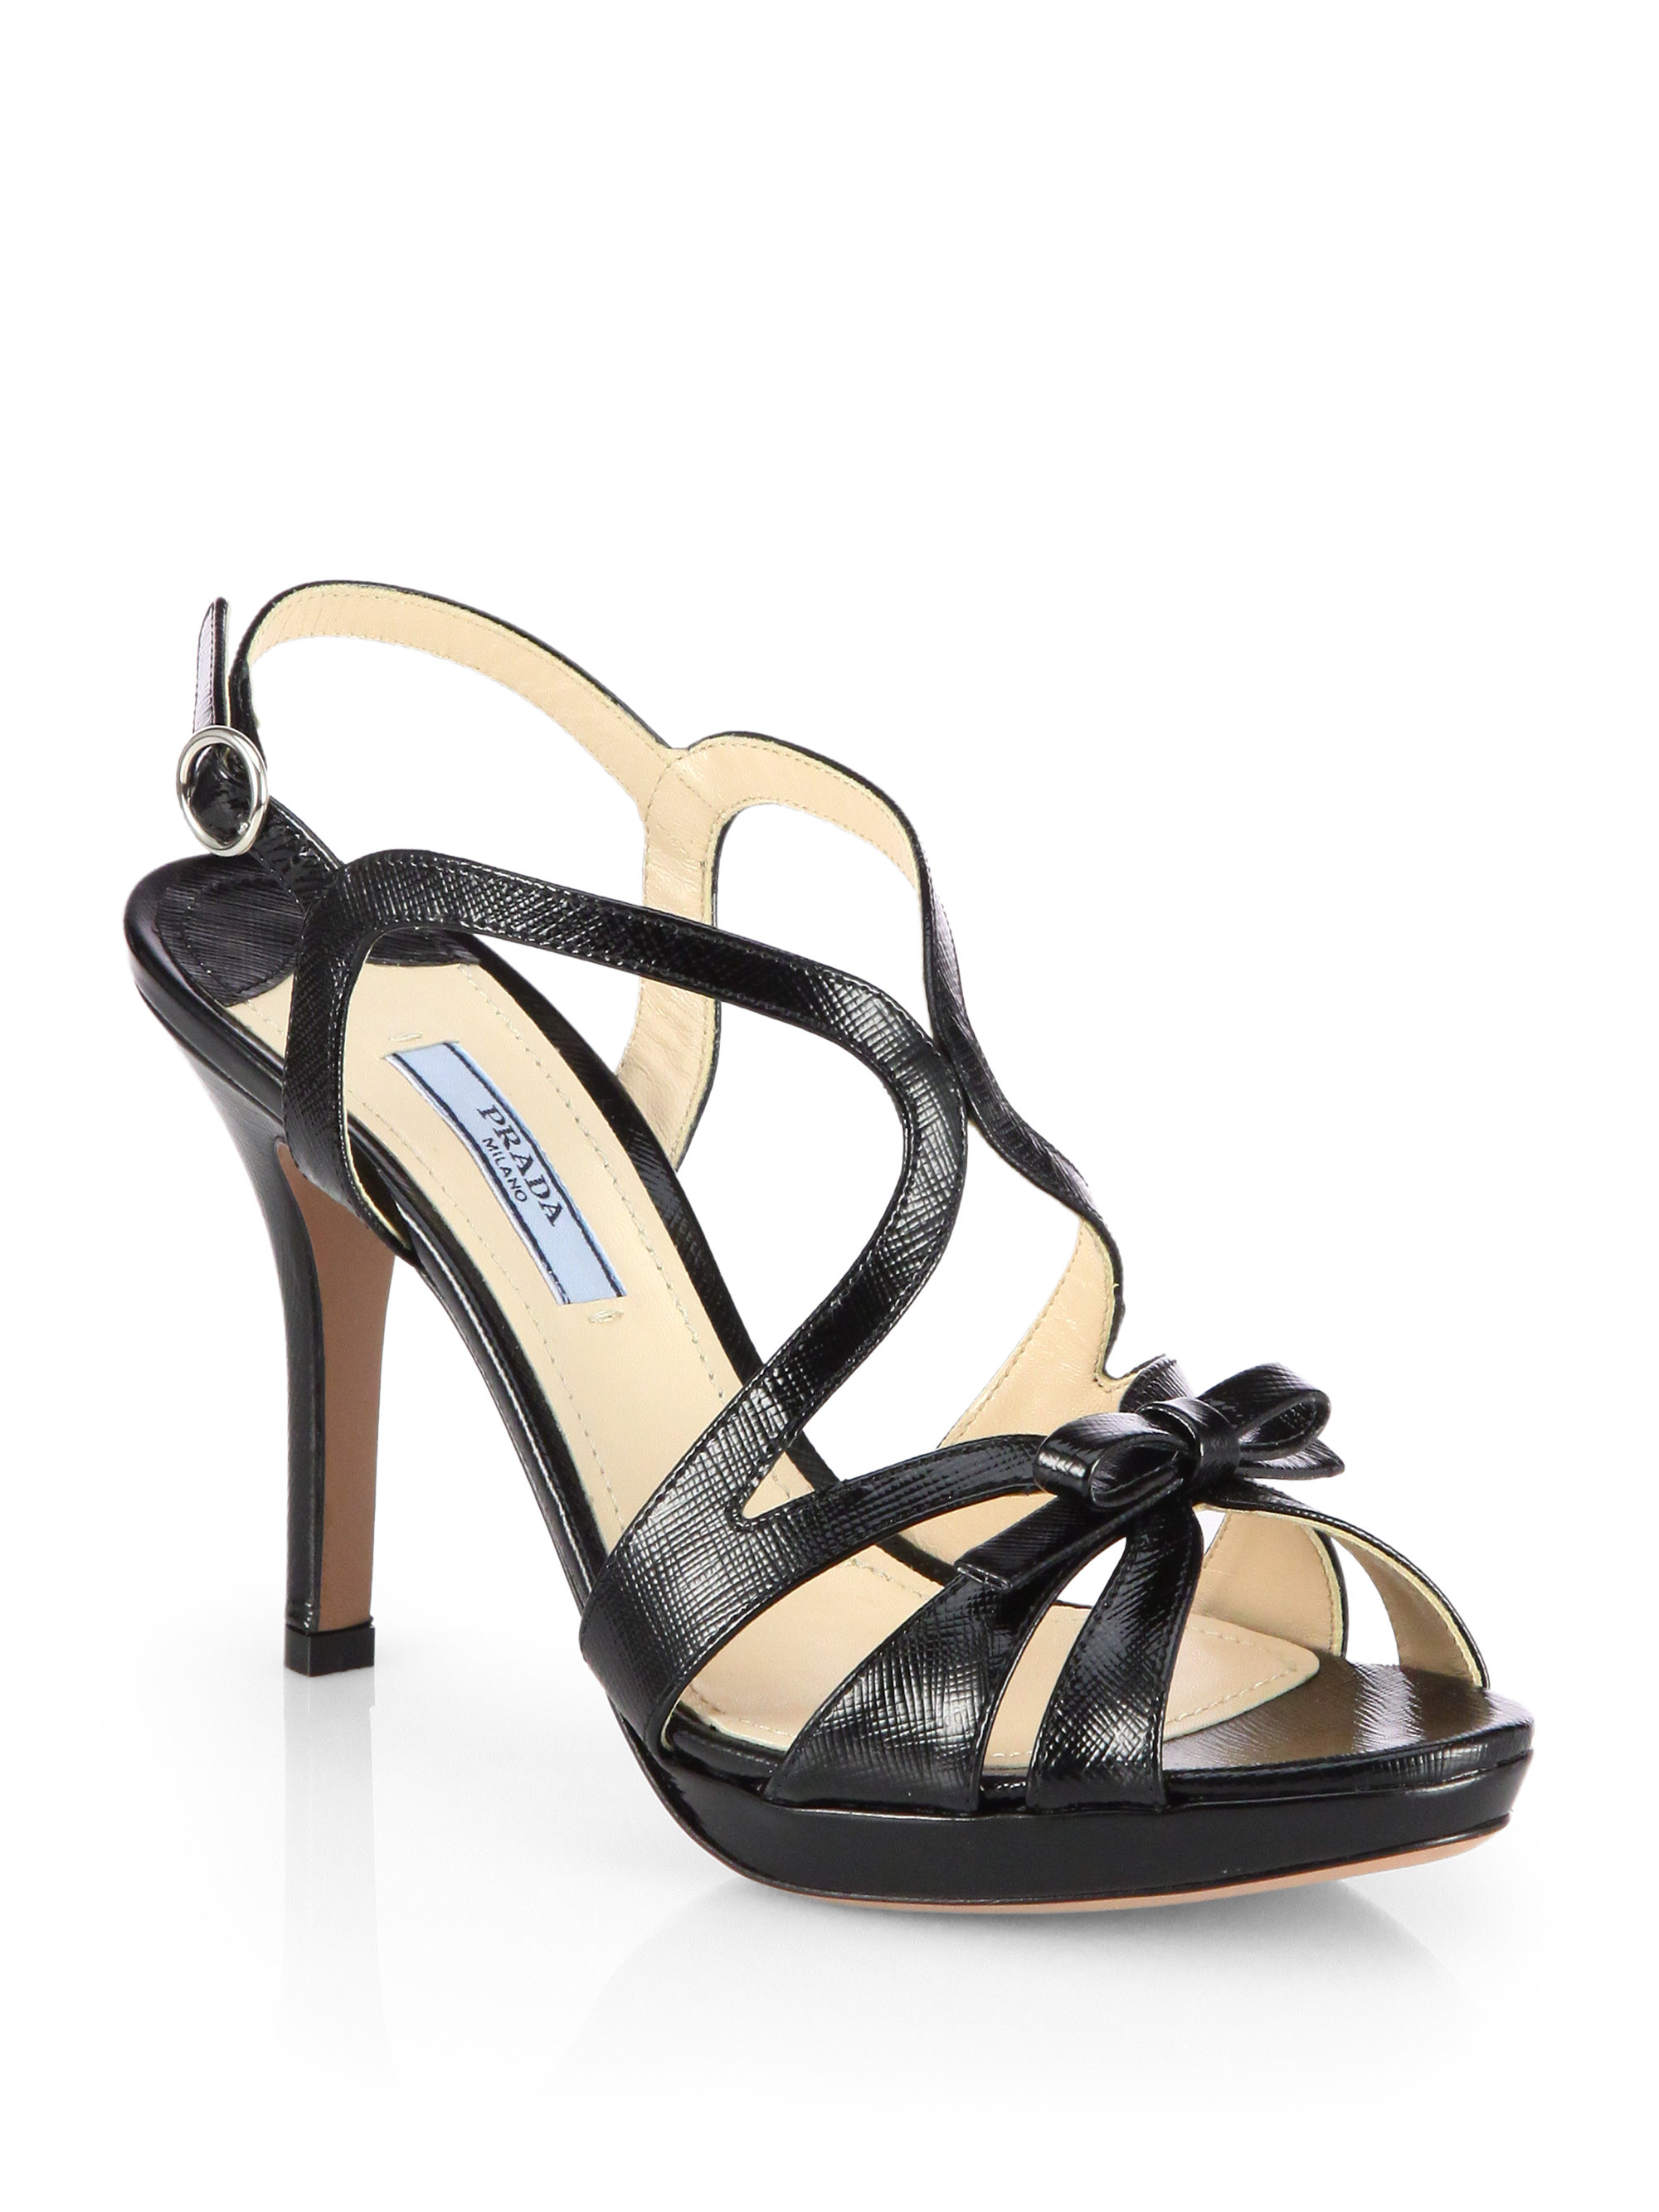 Lyst Prada Patent Leather Crisscross Bow Sandals In Black